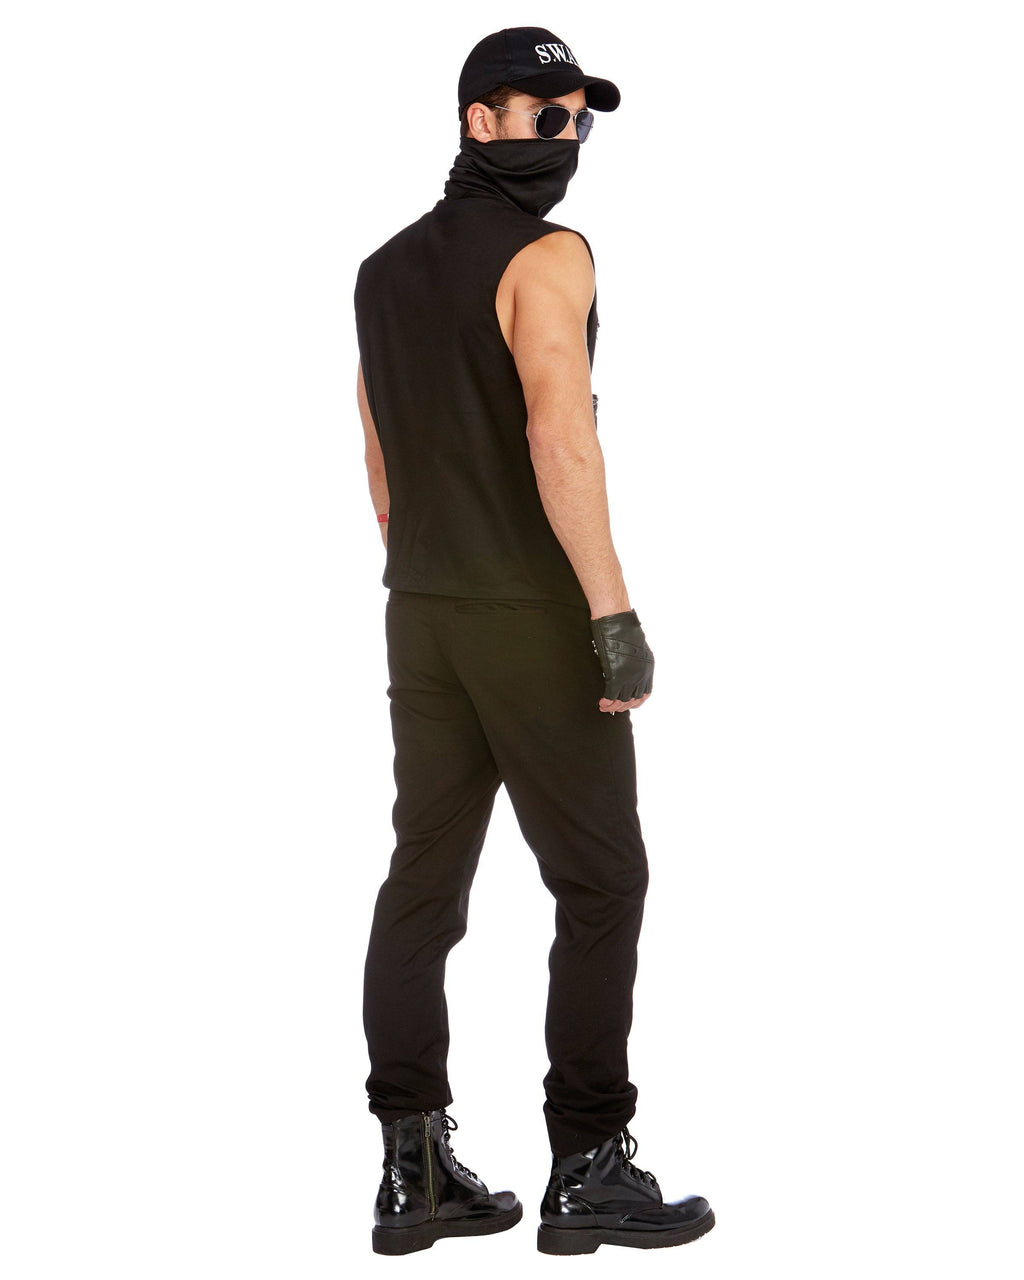 Men's Special Ops Men's Costume Dreamgirl Costume